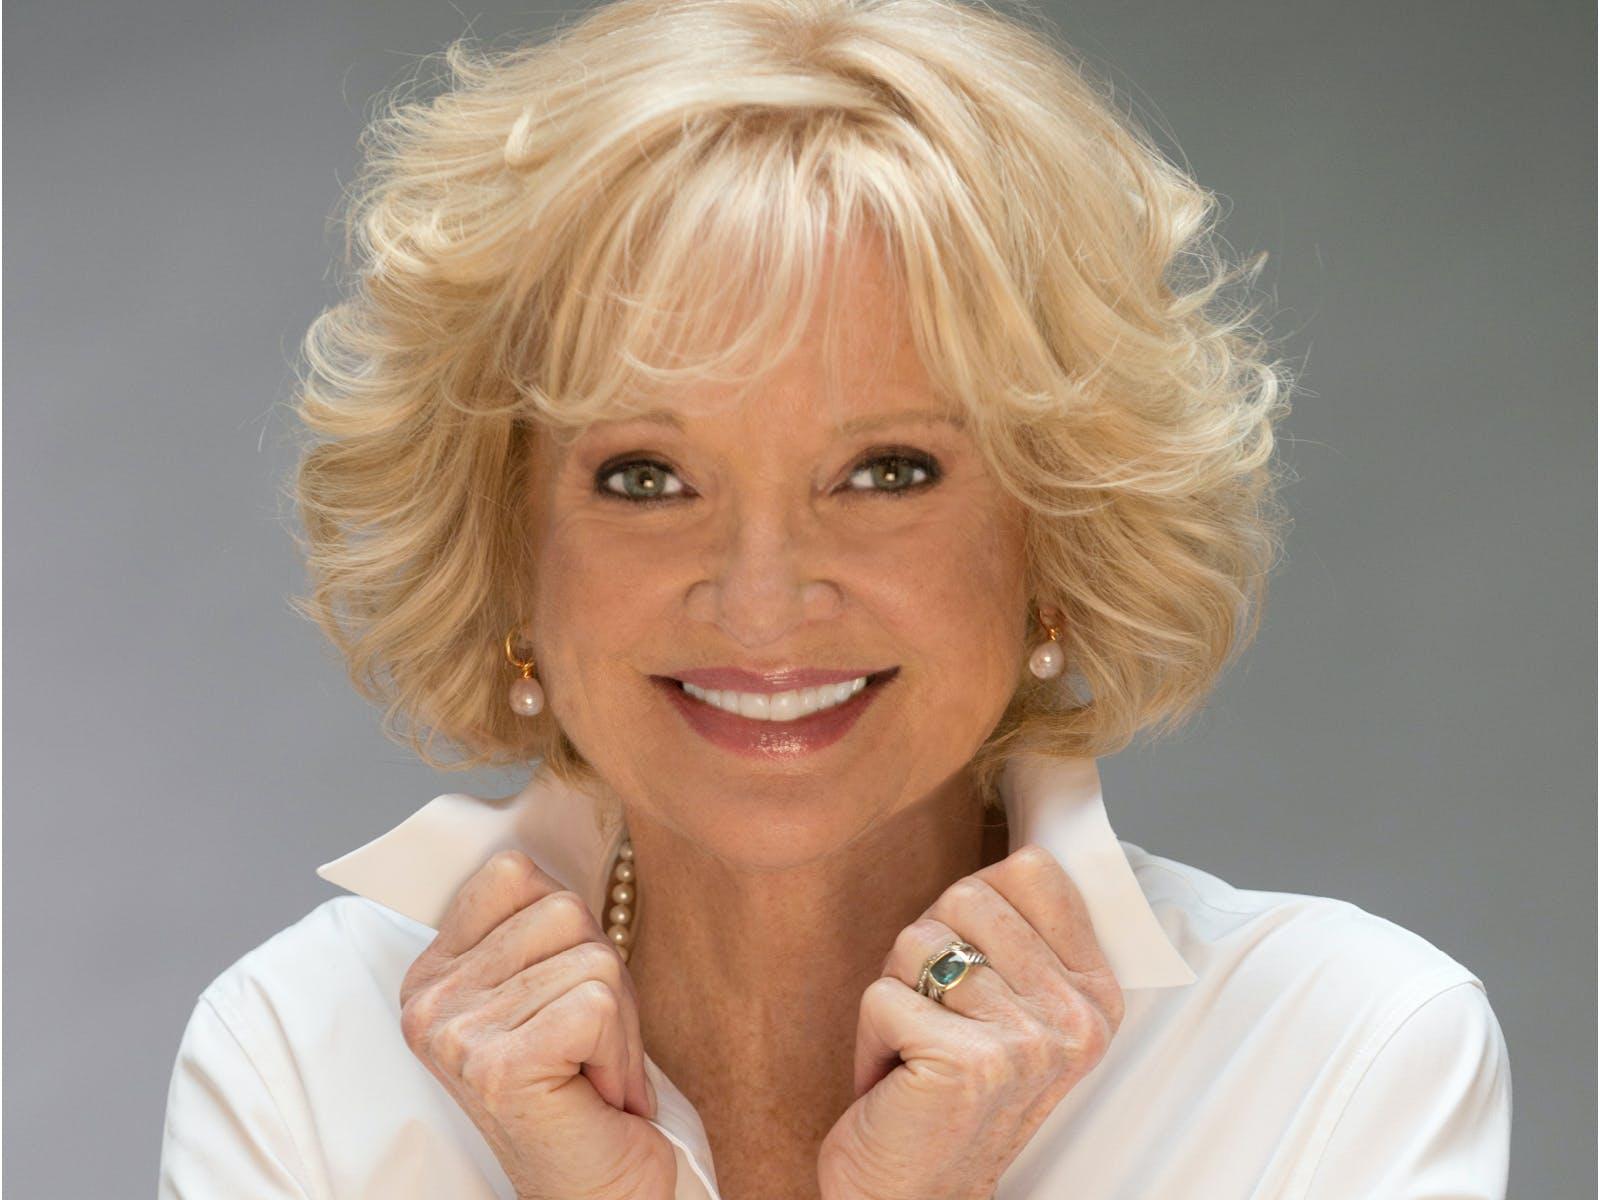 Christine Ebersole nudes (71 foto and video), Sexy, Fappening, Instagram, butt 2020